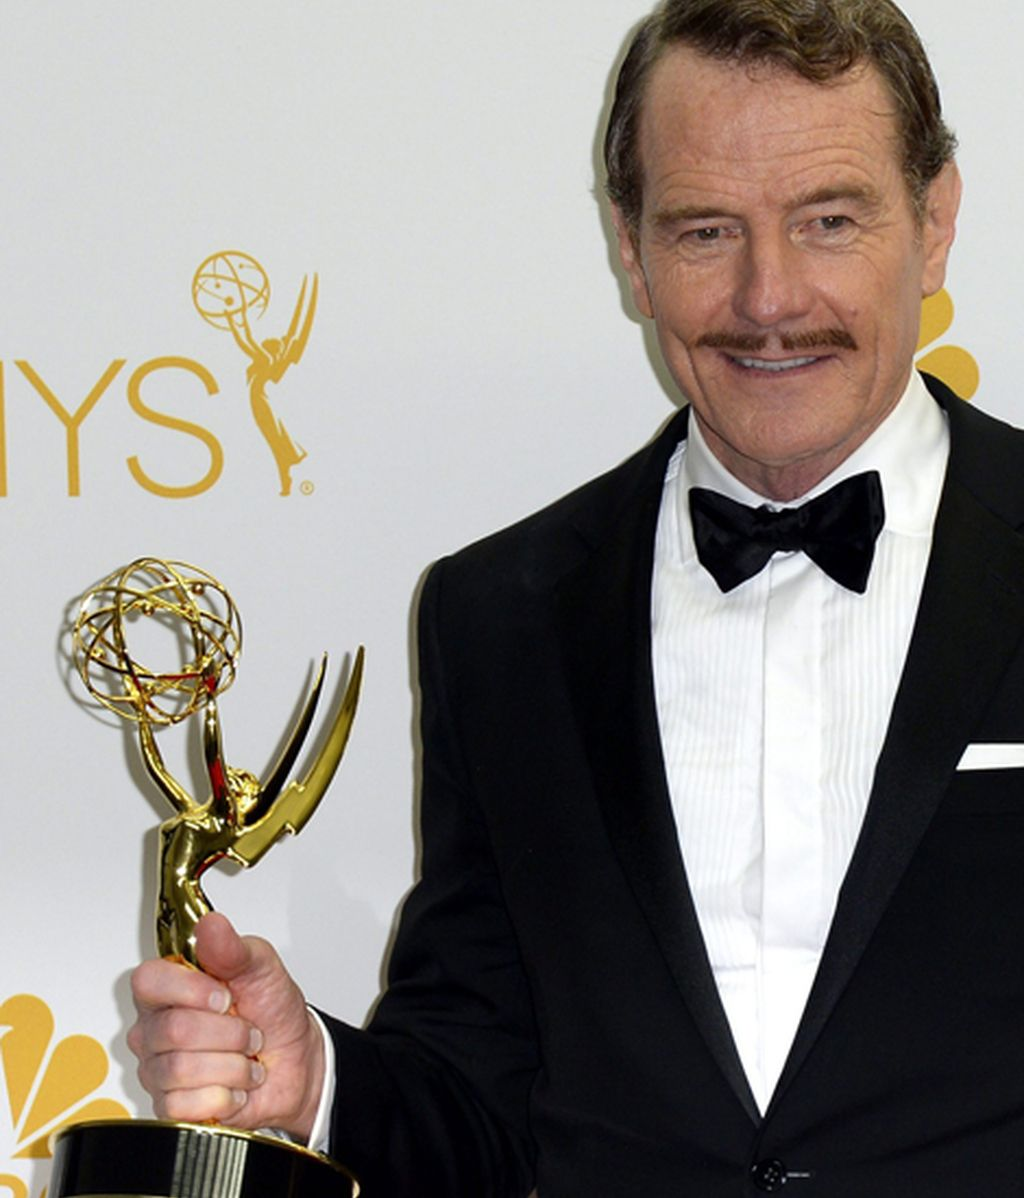 Bryan Cranston, mejor actor de drama por 'Breaking bad'